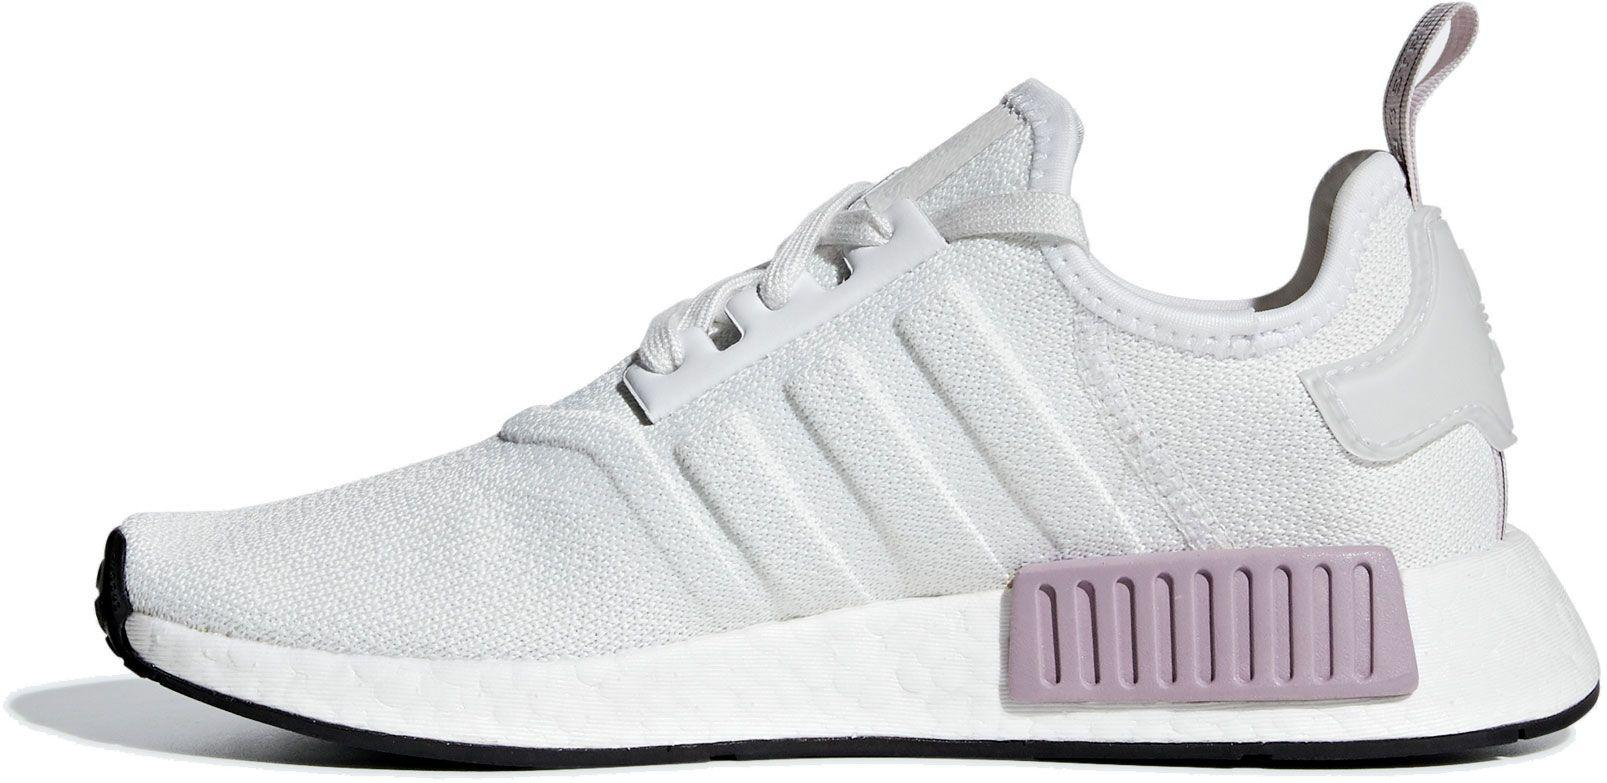 Adidas Suede Originals Nmd R1 Shoes In White Purple White Lyst